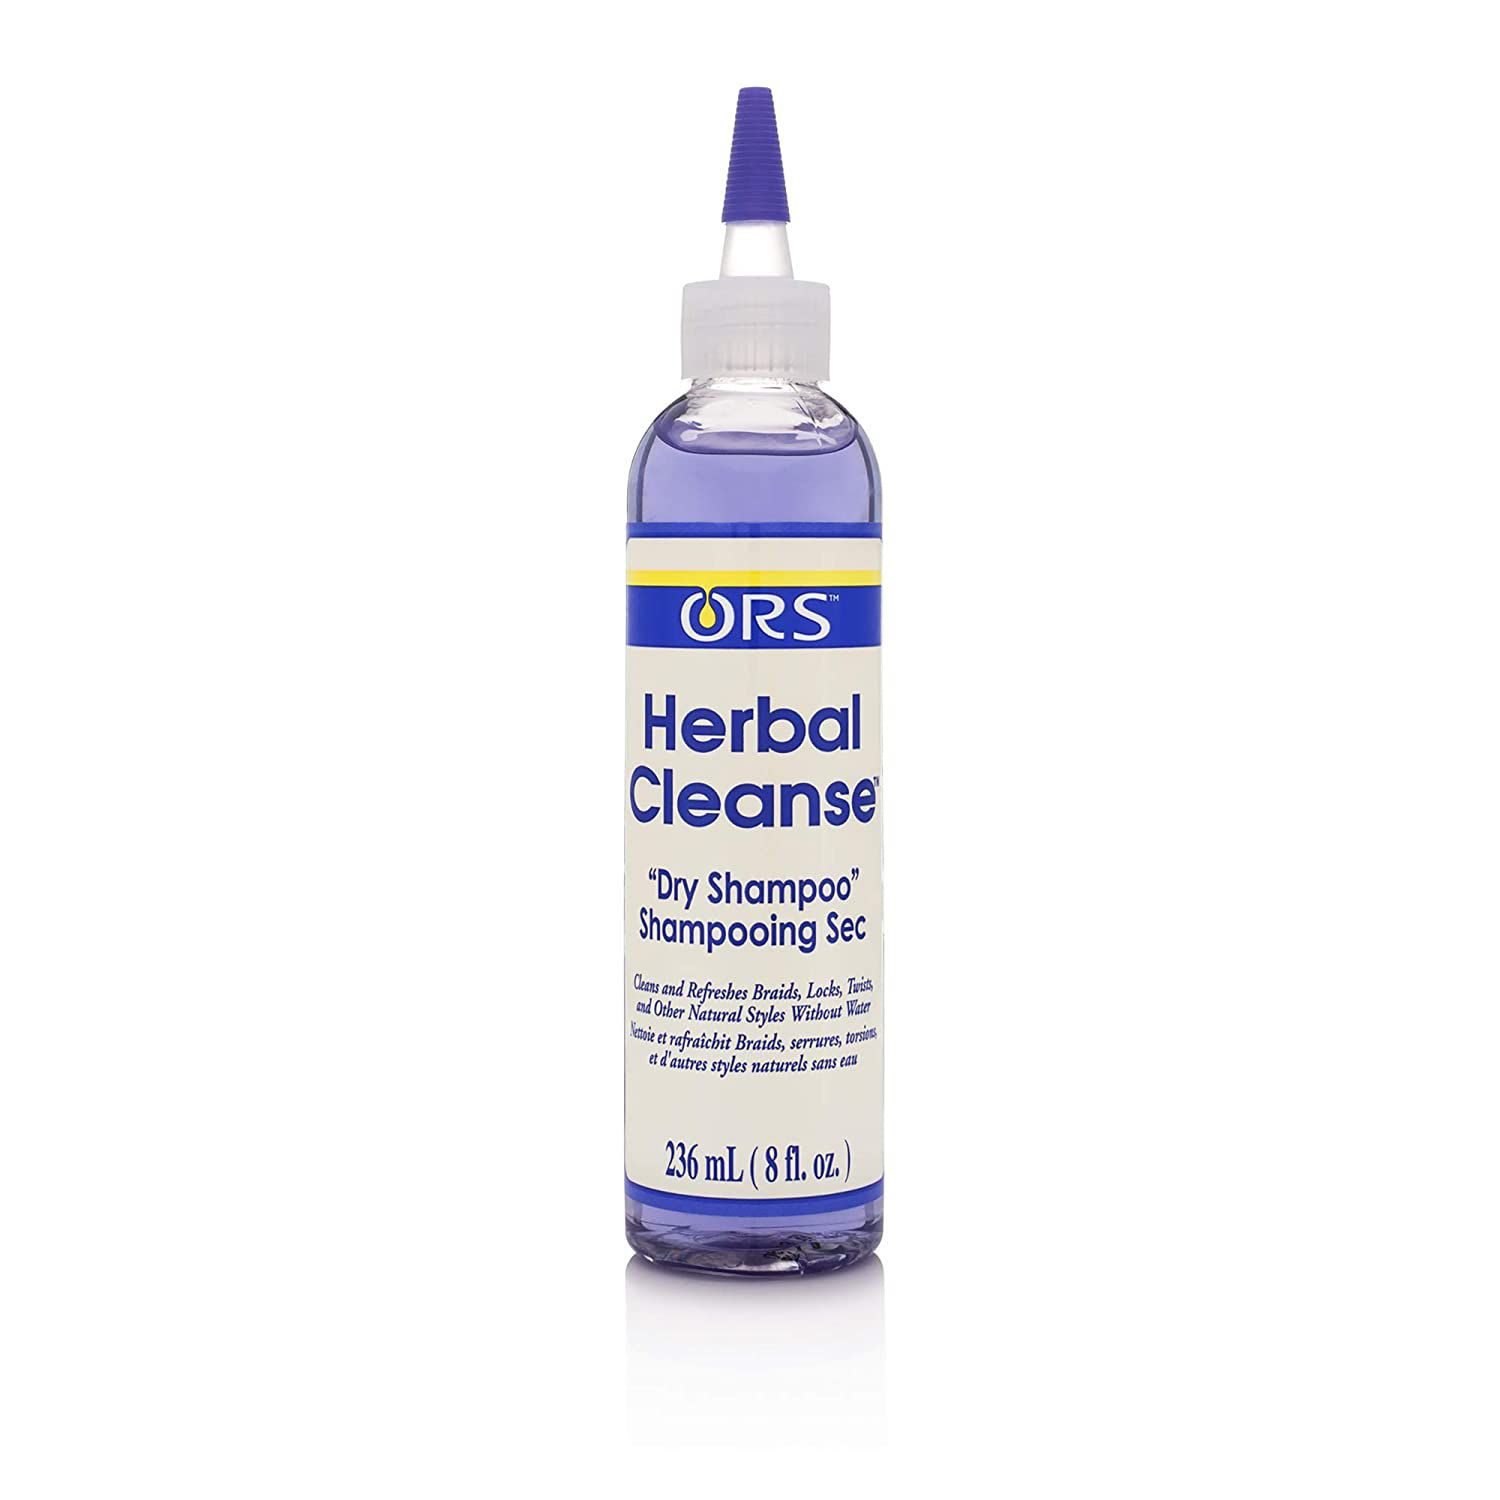 ORS Herbal Cleanse Hair and Scalp Dry Shampoo